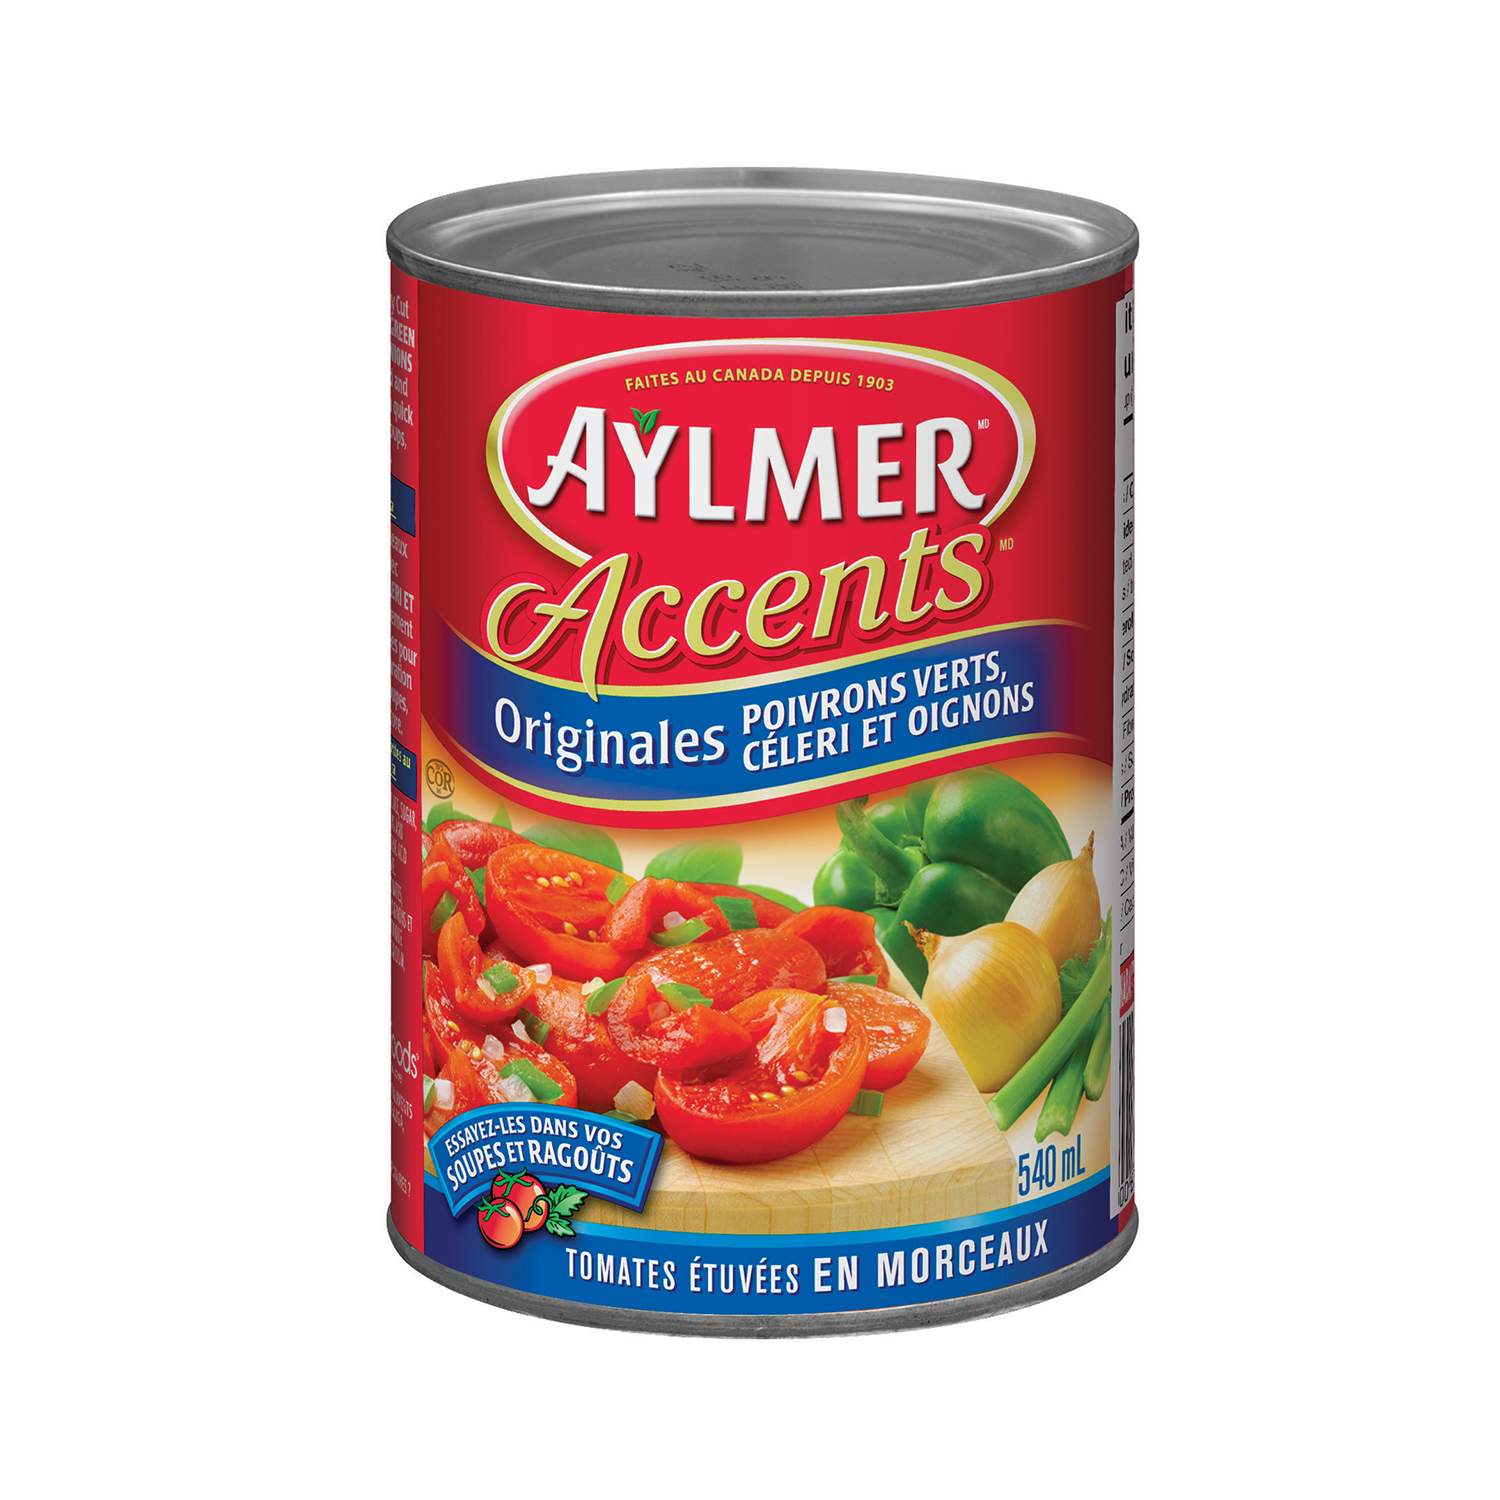 Aylmer Accents Original Stewed